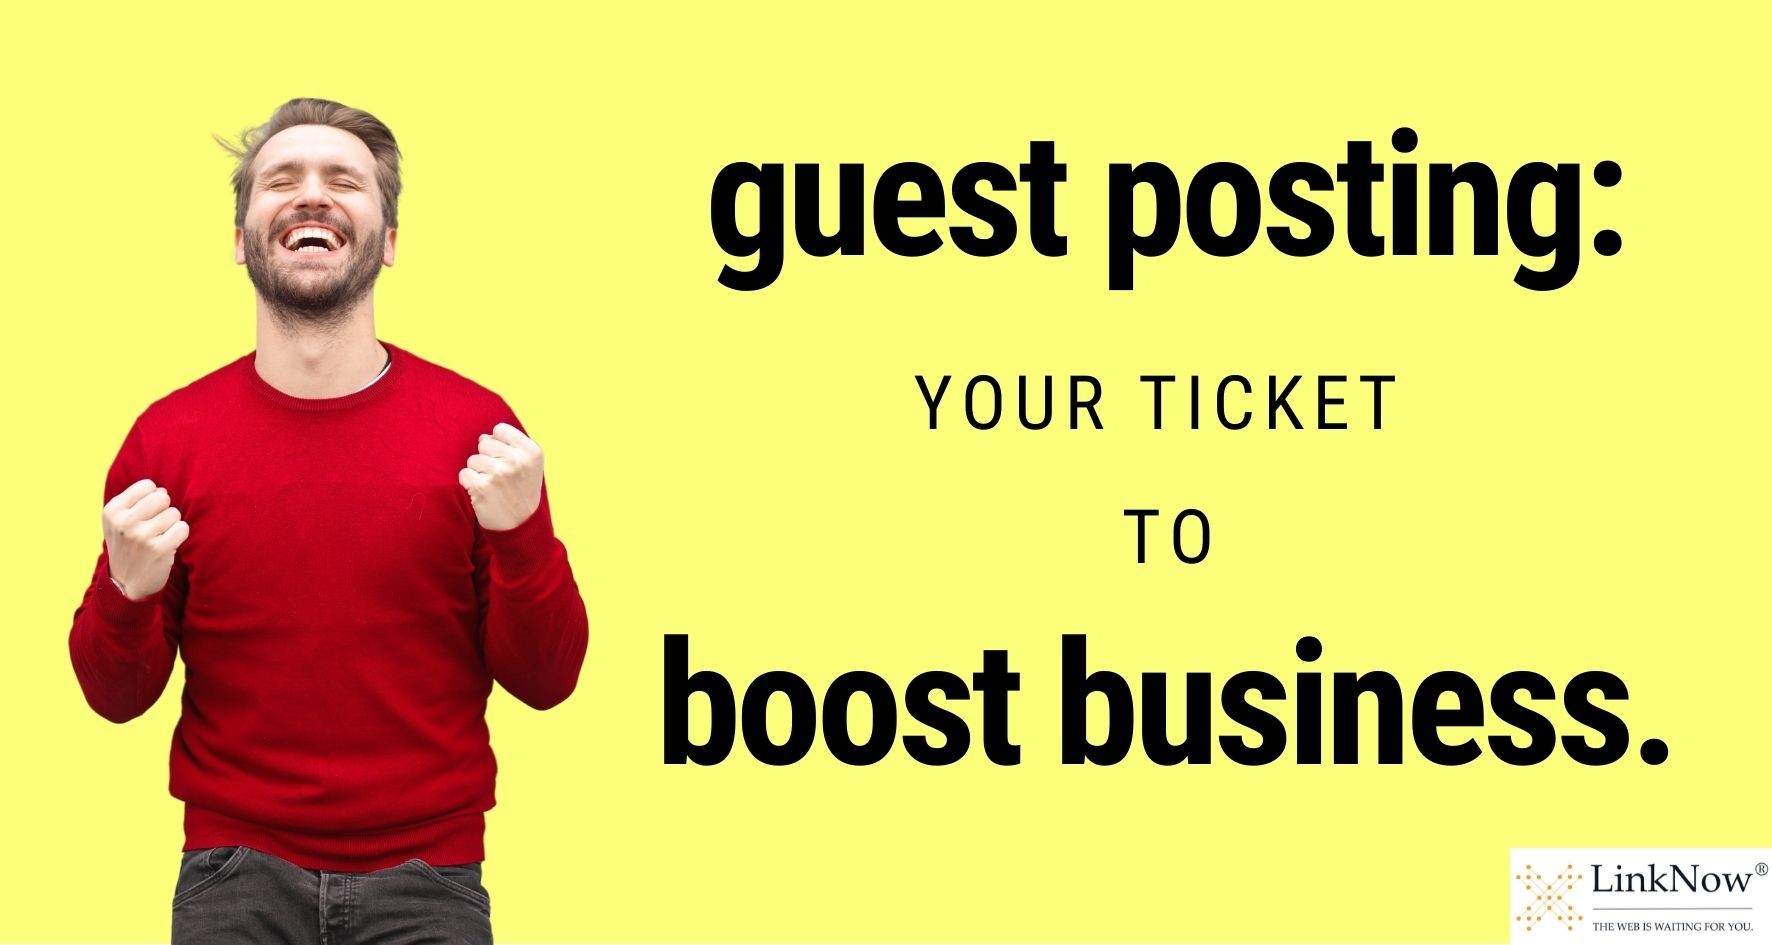 Guest posting: Your ticket to boost business.